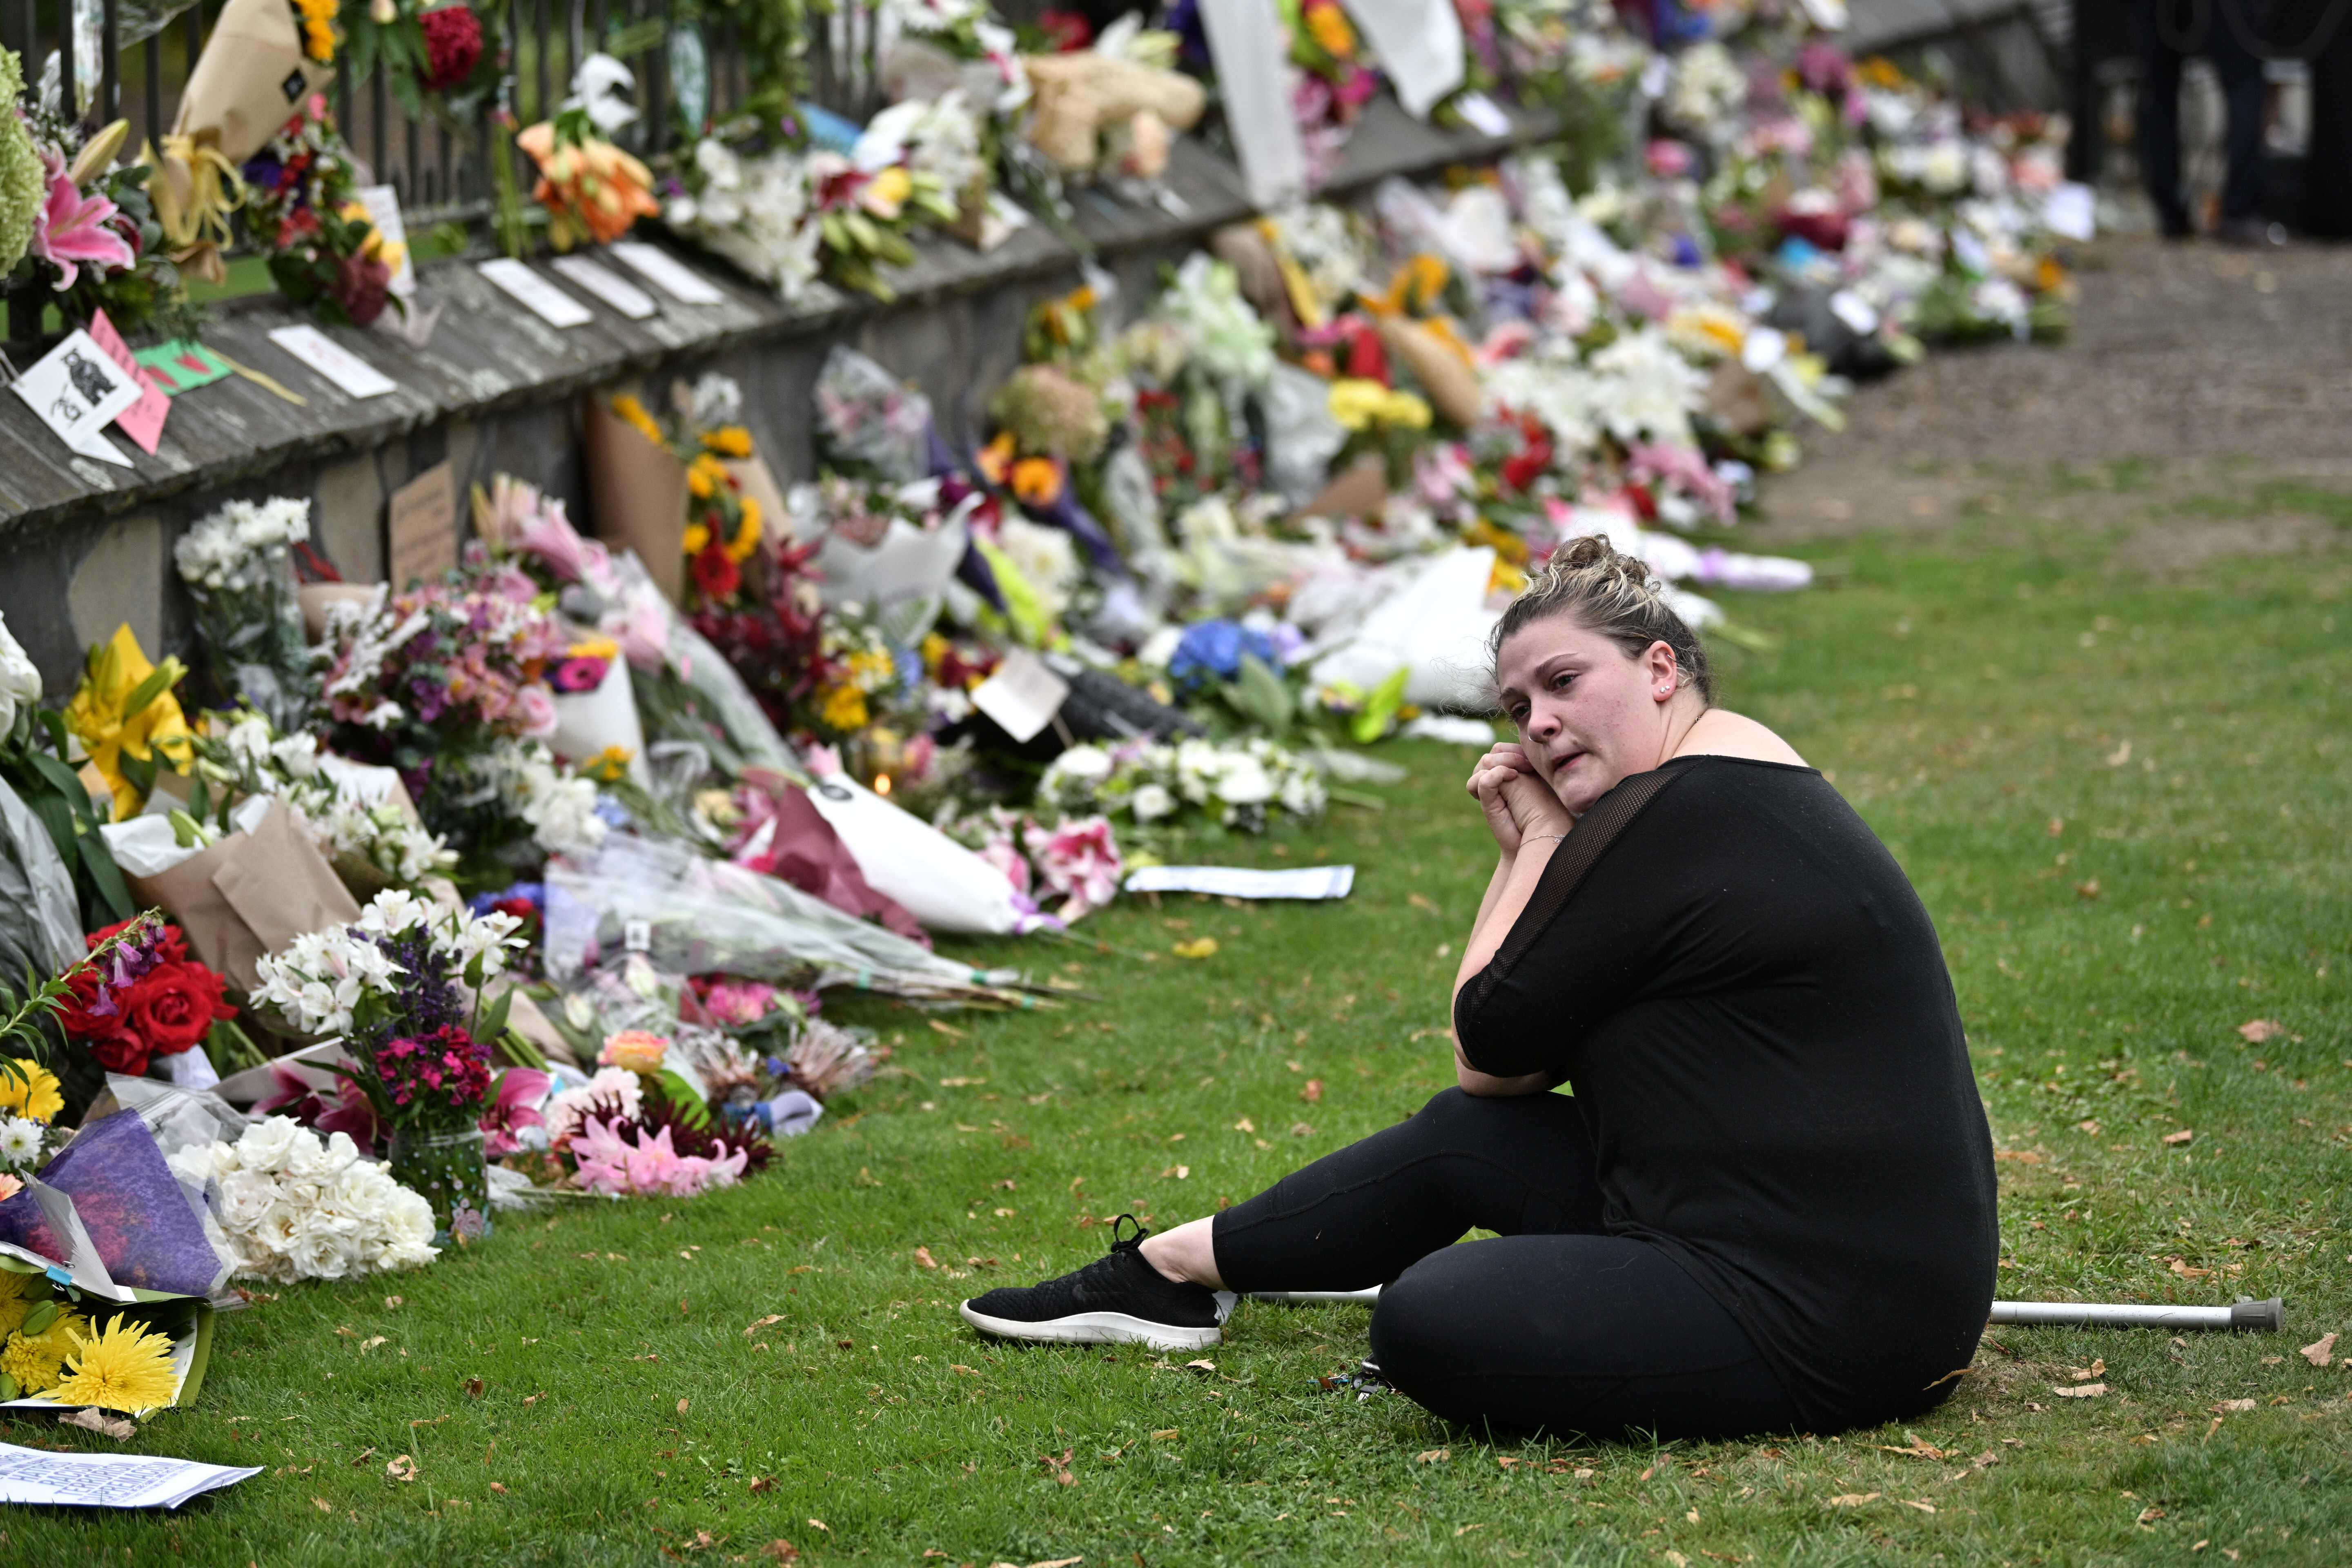 A woman reacts as she sits among flowers left in tribute to victims outside the entrance of the hospital in Christchurch on March 16, 2019, after a shooting incident at two mosques in Christchurch the previous day.